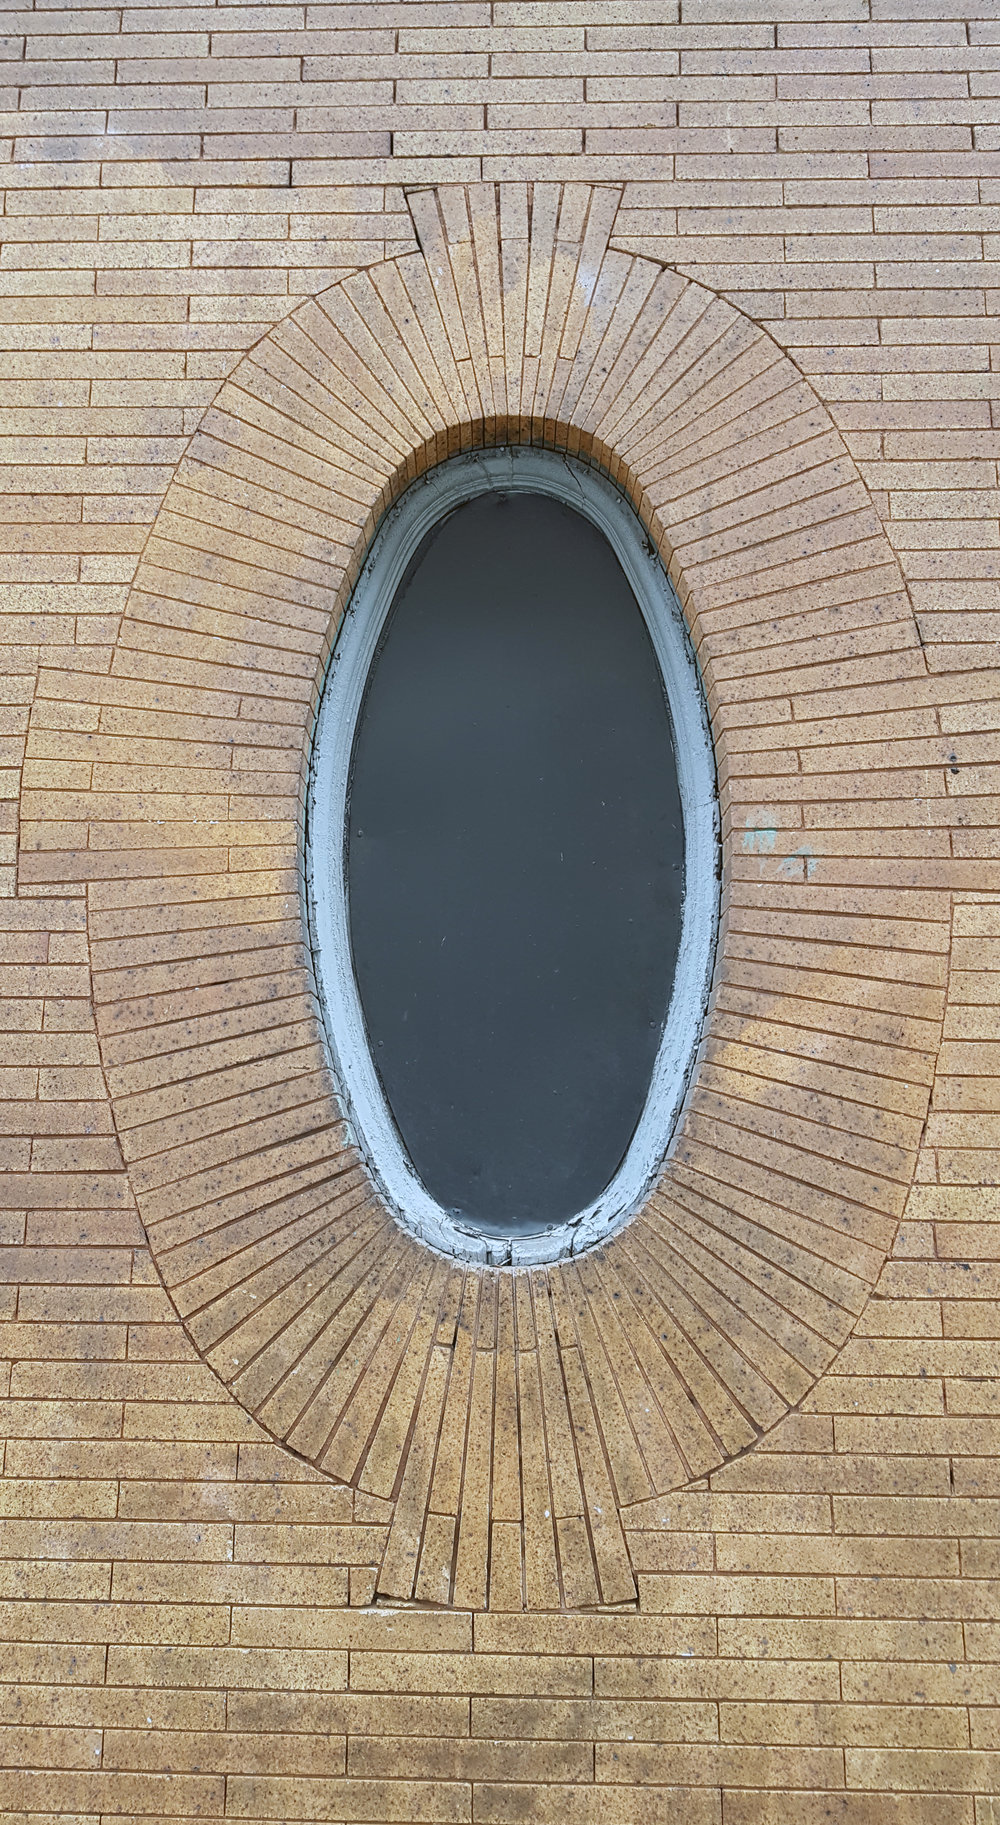 A detail of the oval window; look at how carefully the bricks were cut to fit it.